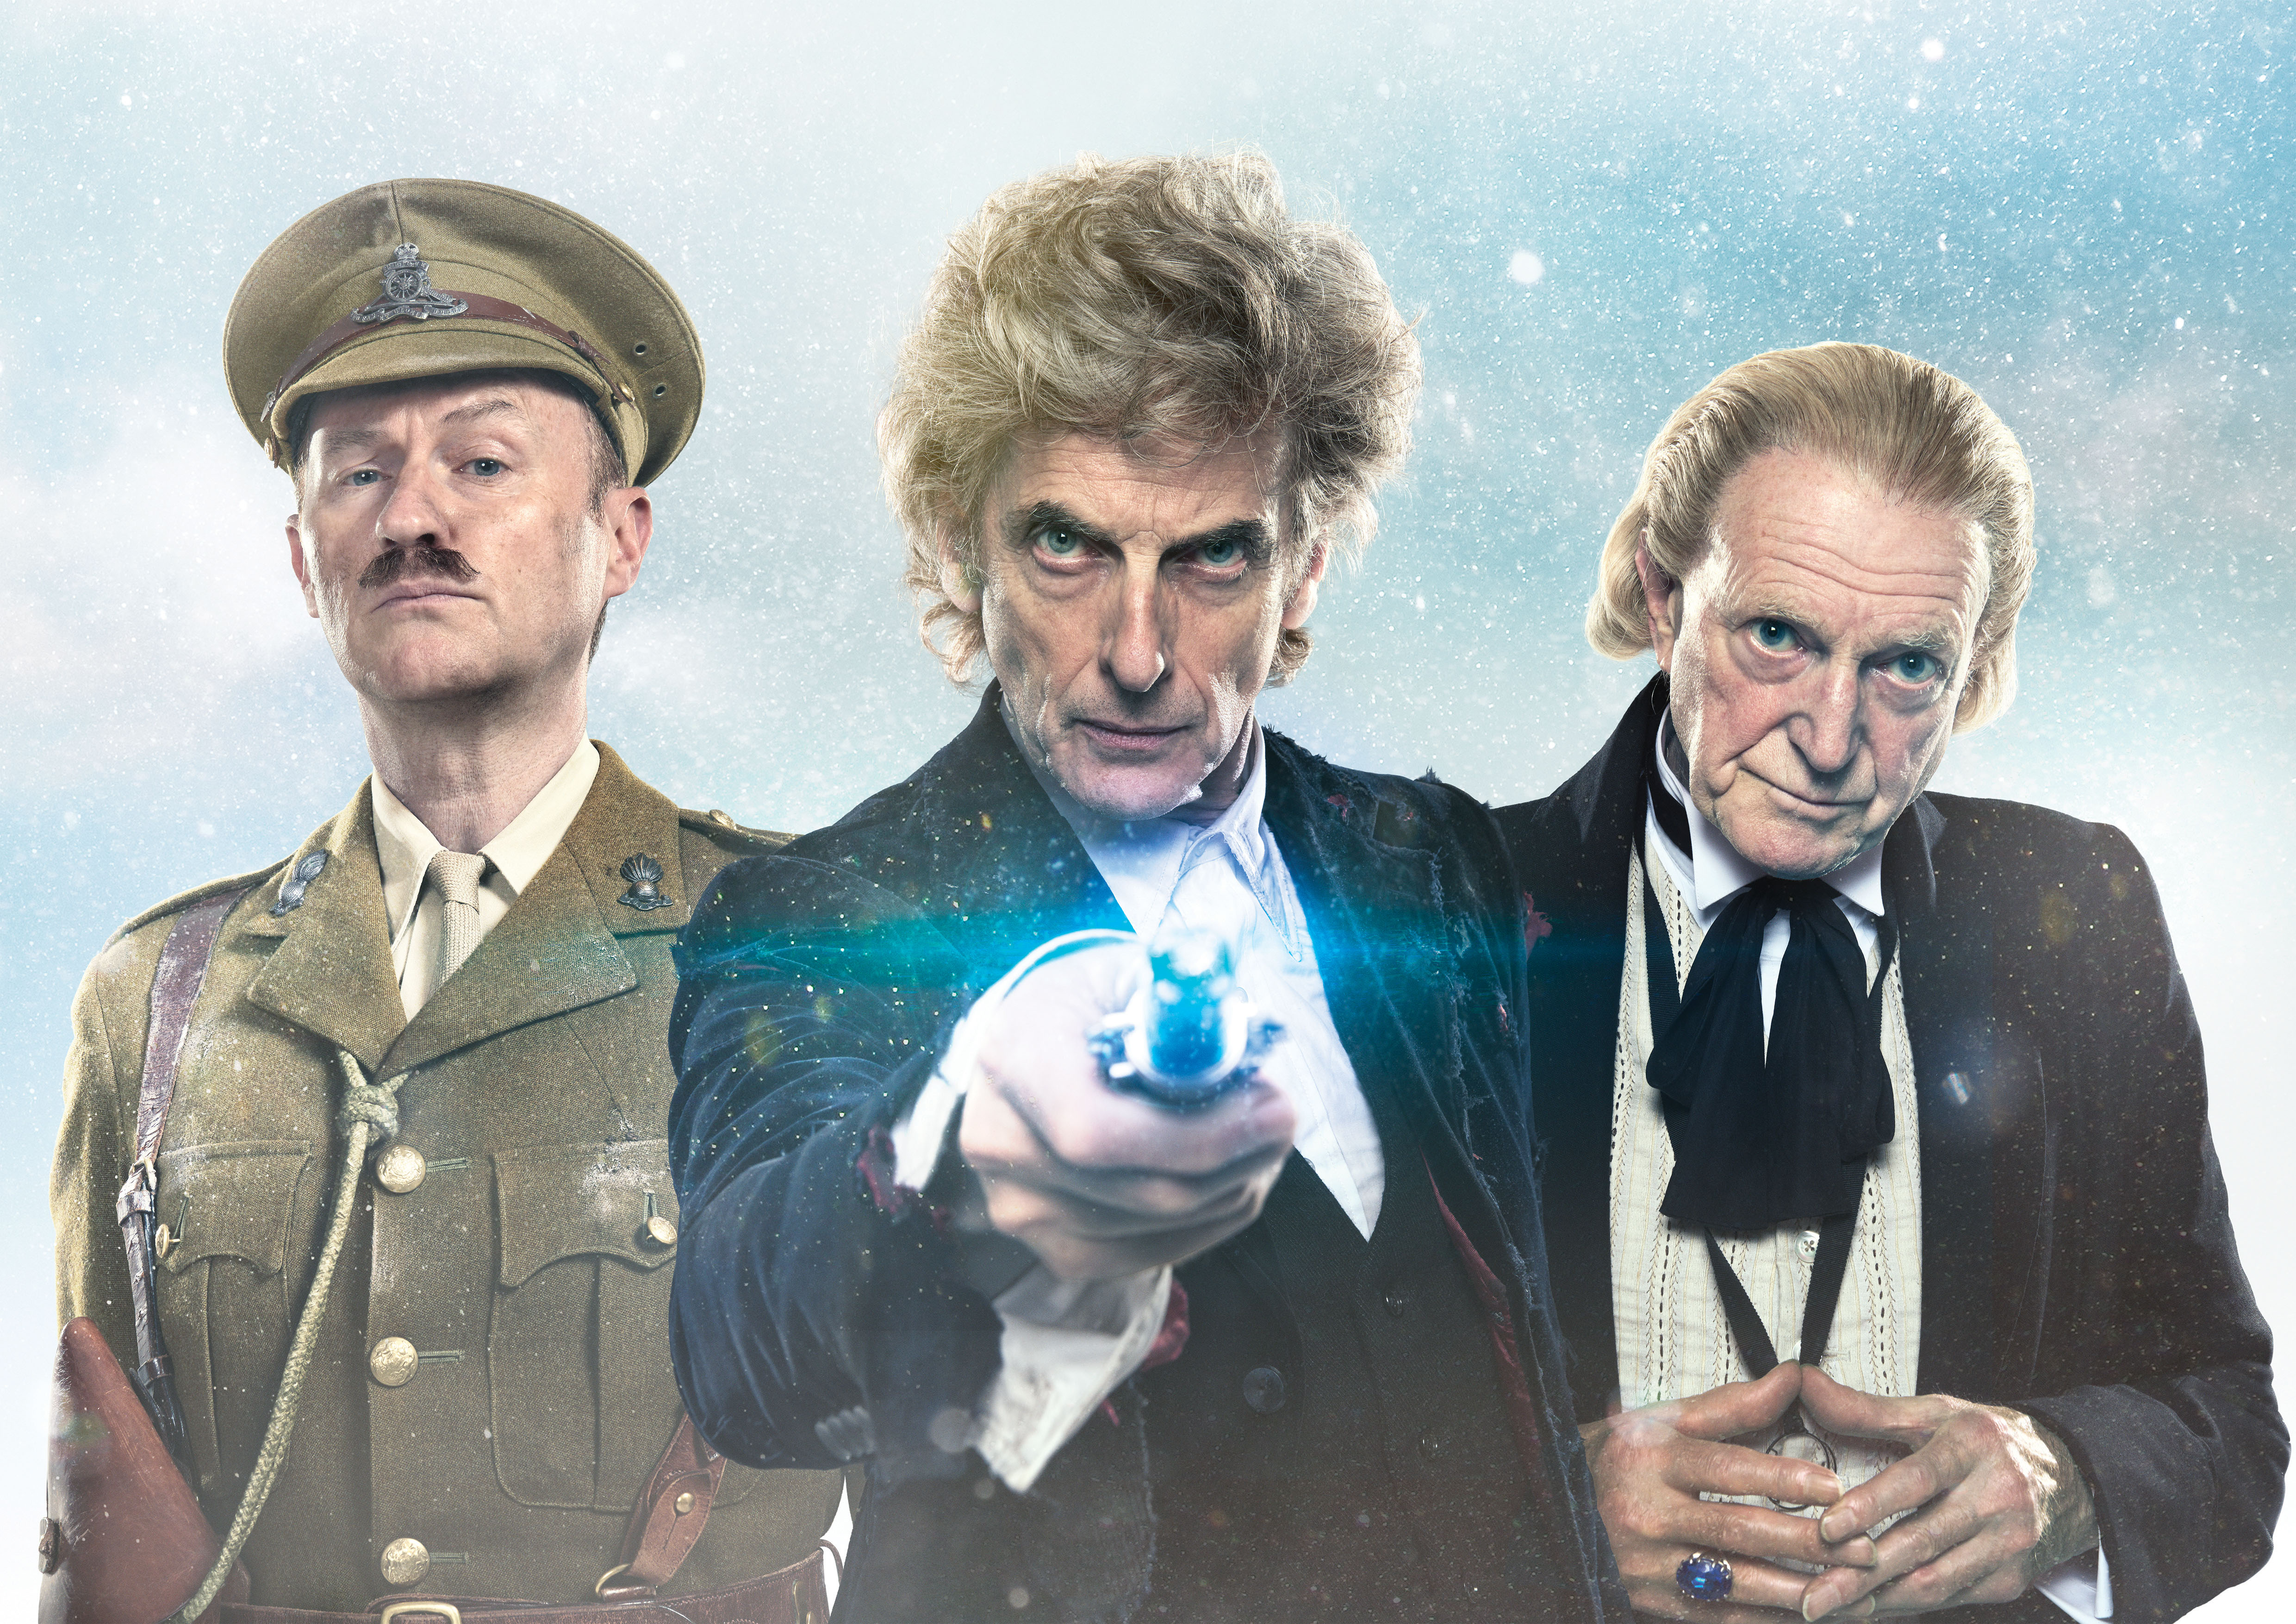 Dr Who Christmas Special.Doctor Who Christmas Special To Premiere Early December In